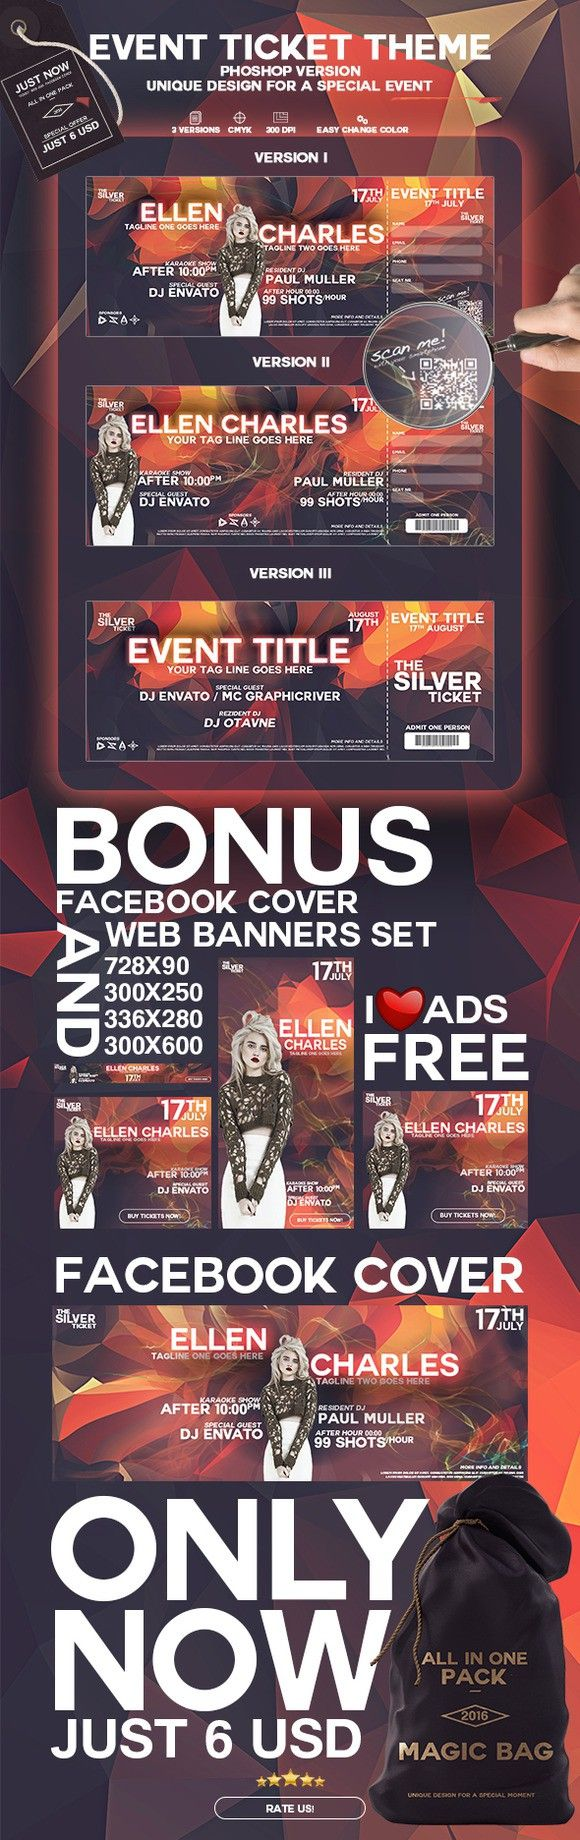 Event Ticket. Stationery Templates